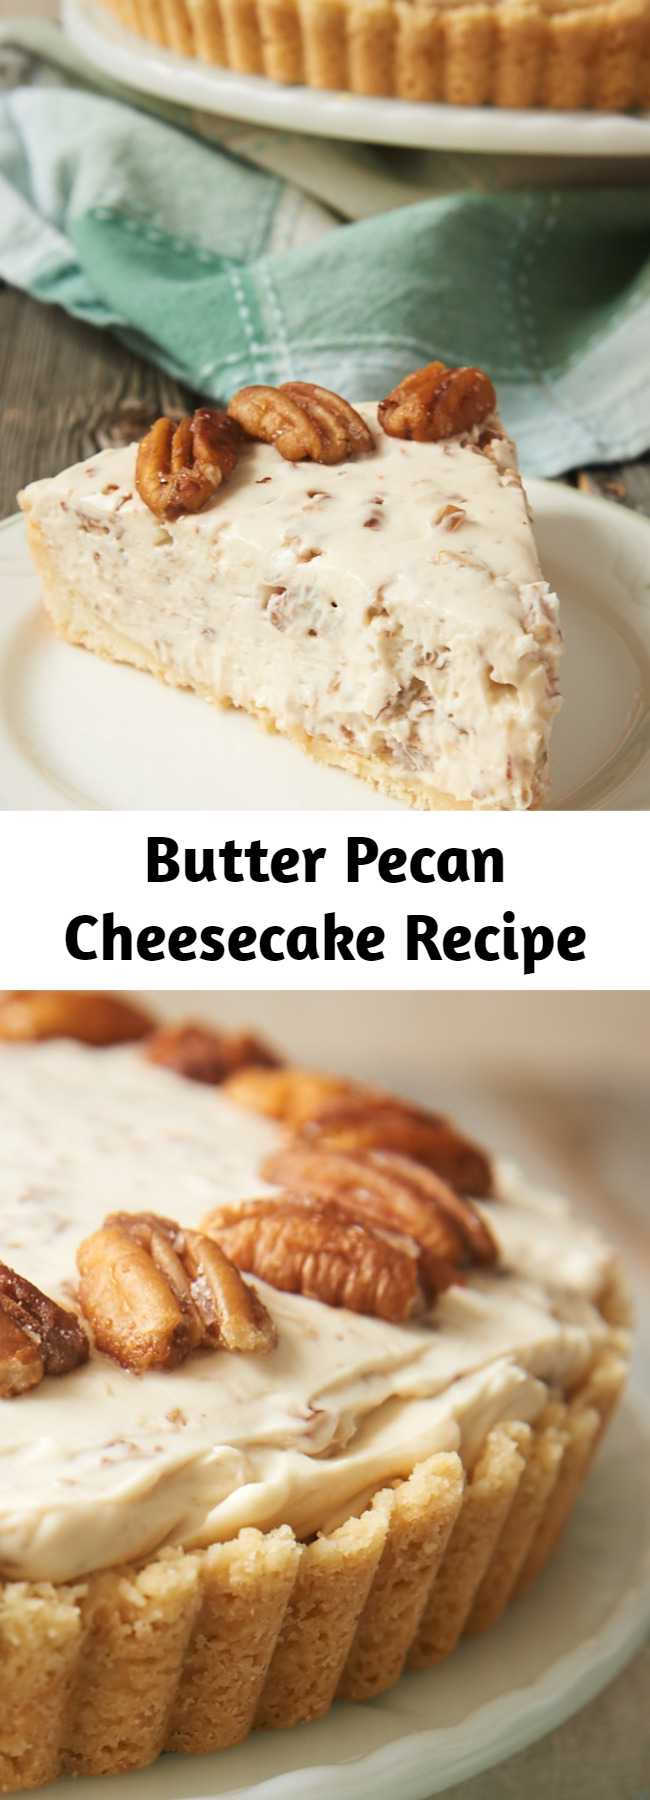 Butter Pecan Cheesecake Recipe - Buttery toasted pecans add big flavor to this Butter Pecan Cheesecake!